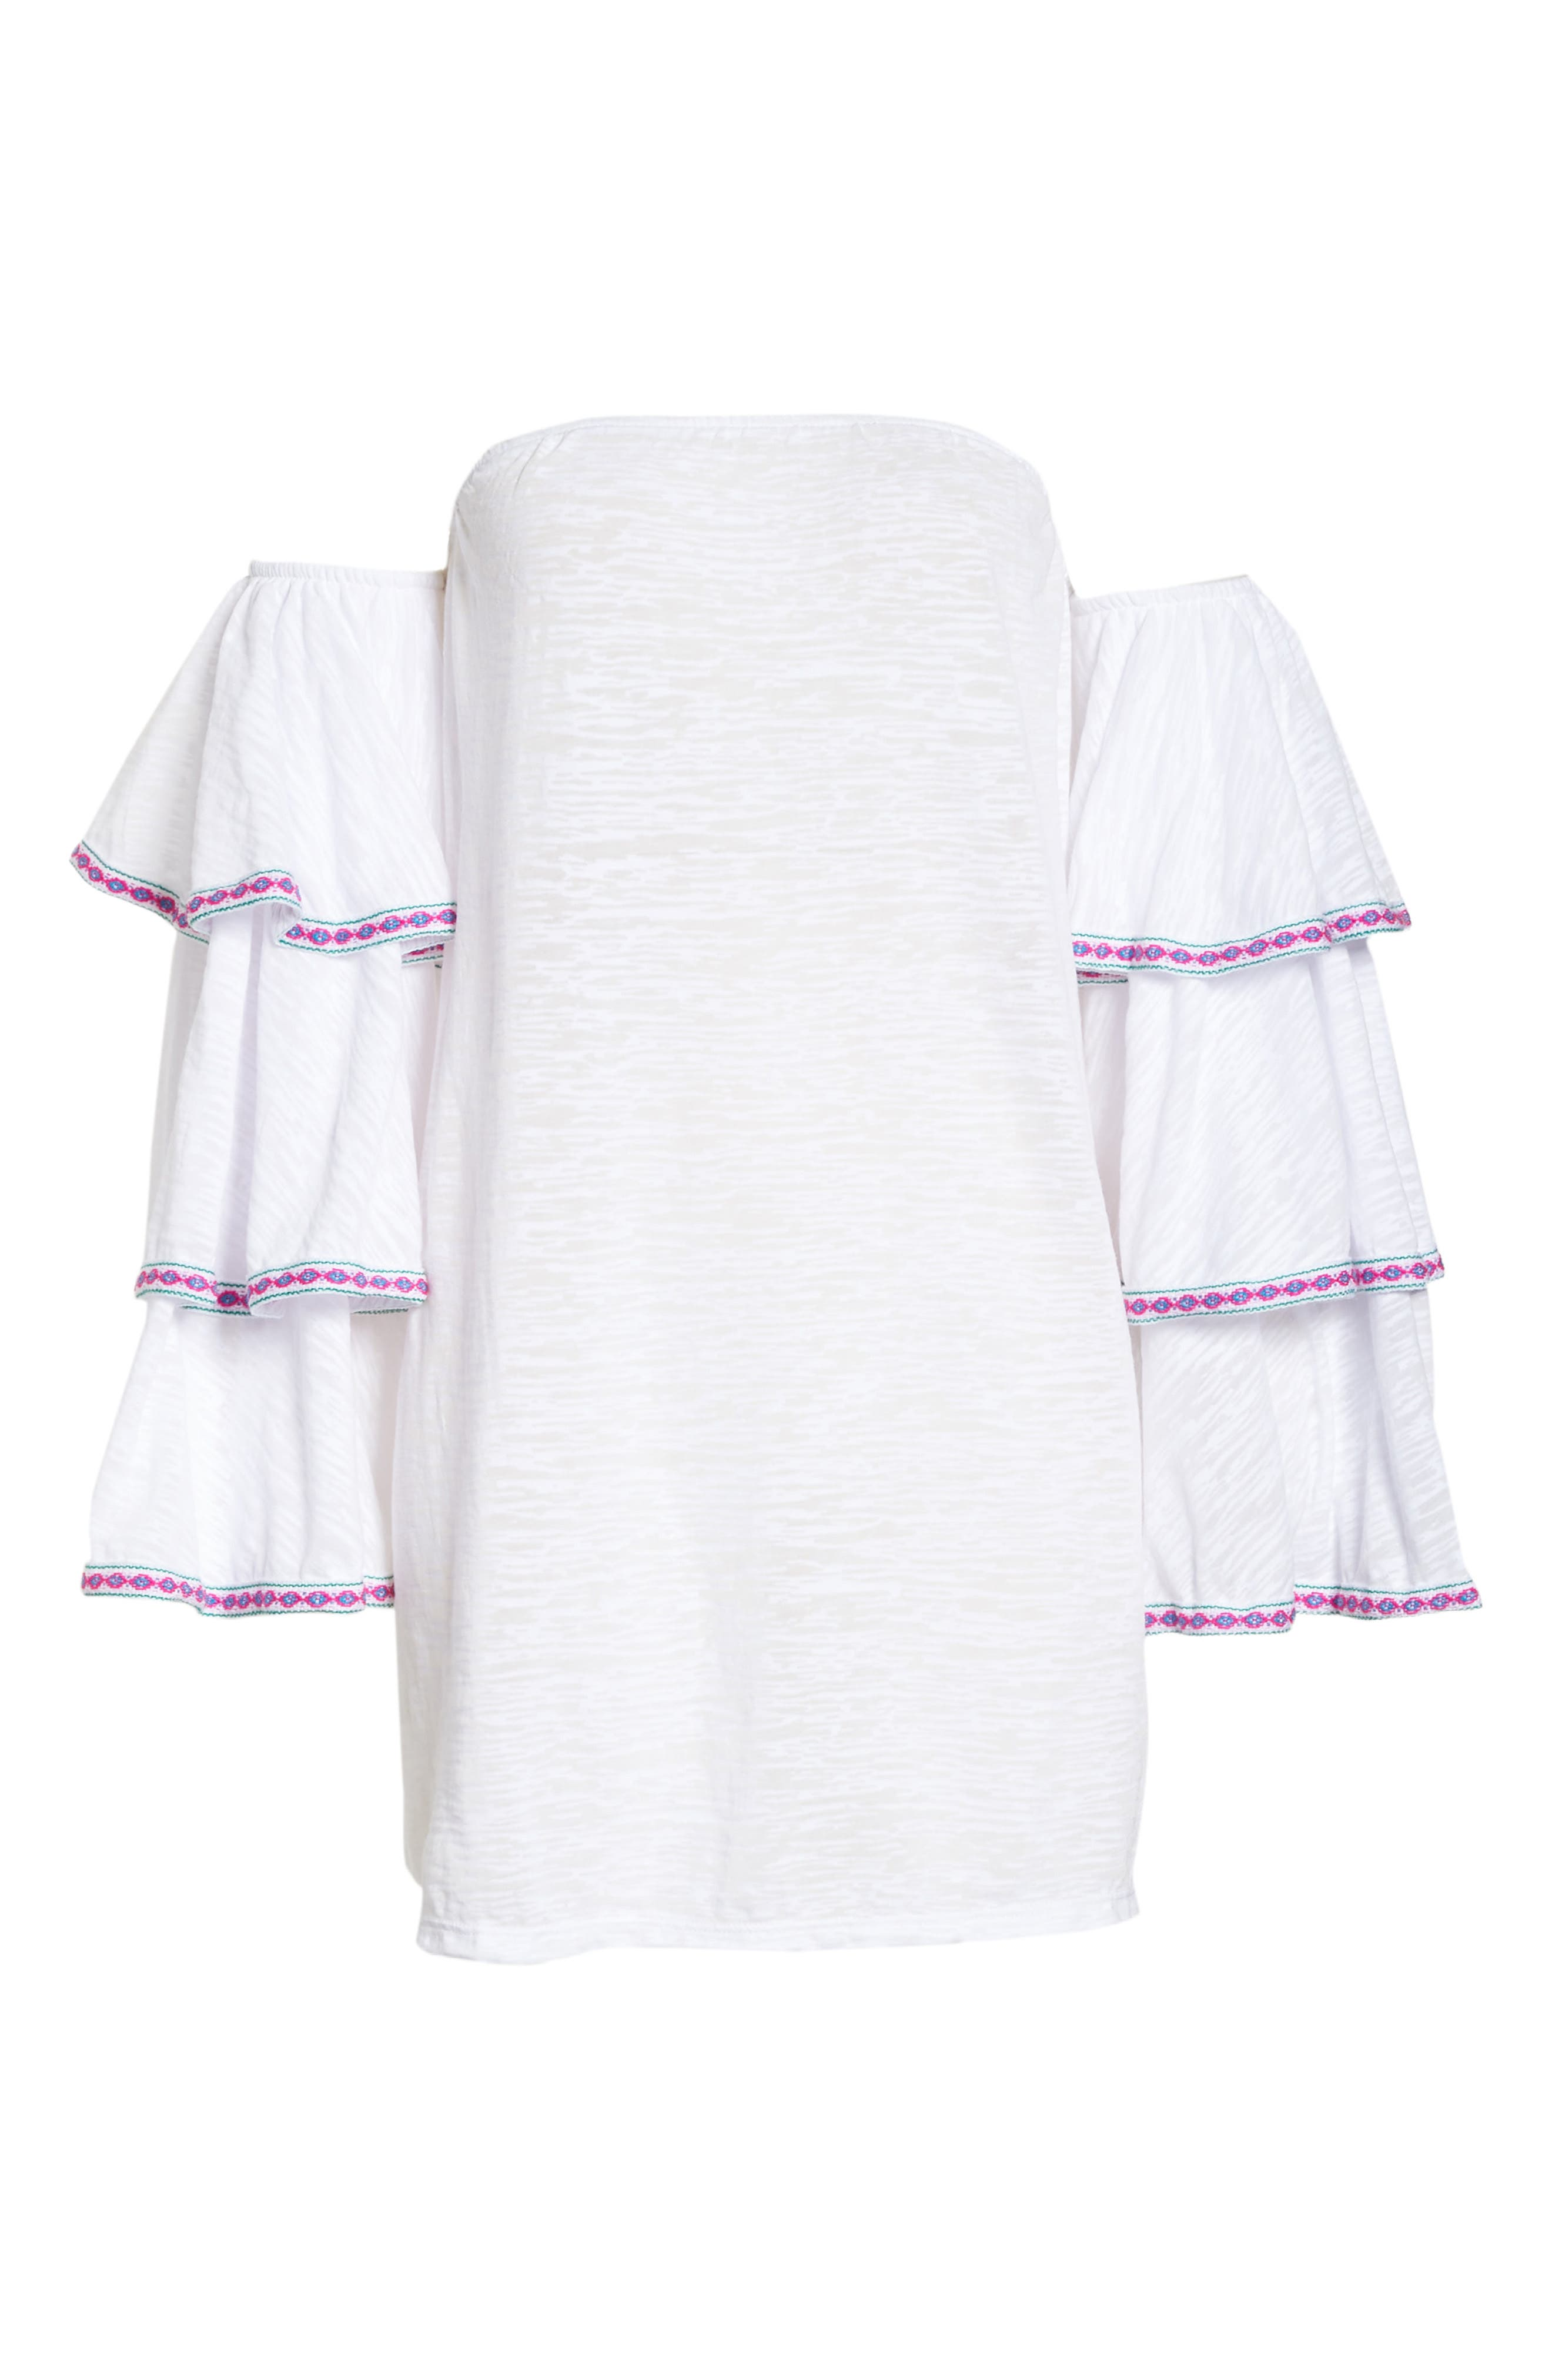 Off the Shoulder Cover-Up Dress,                             Alternate thumbnail 6, color,                             White